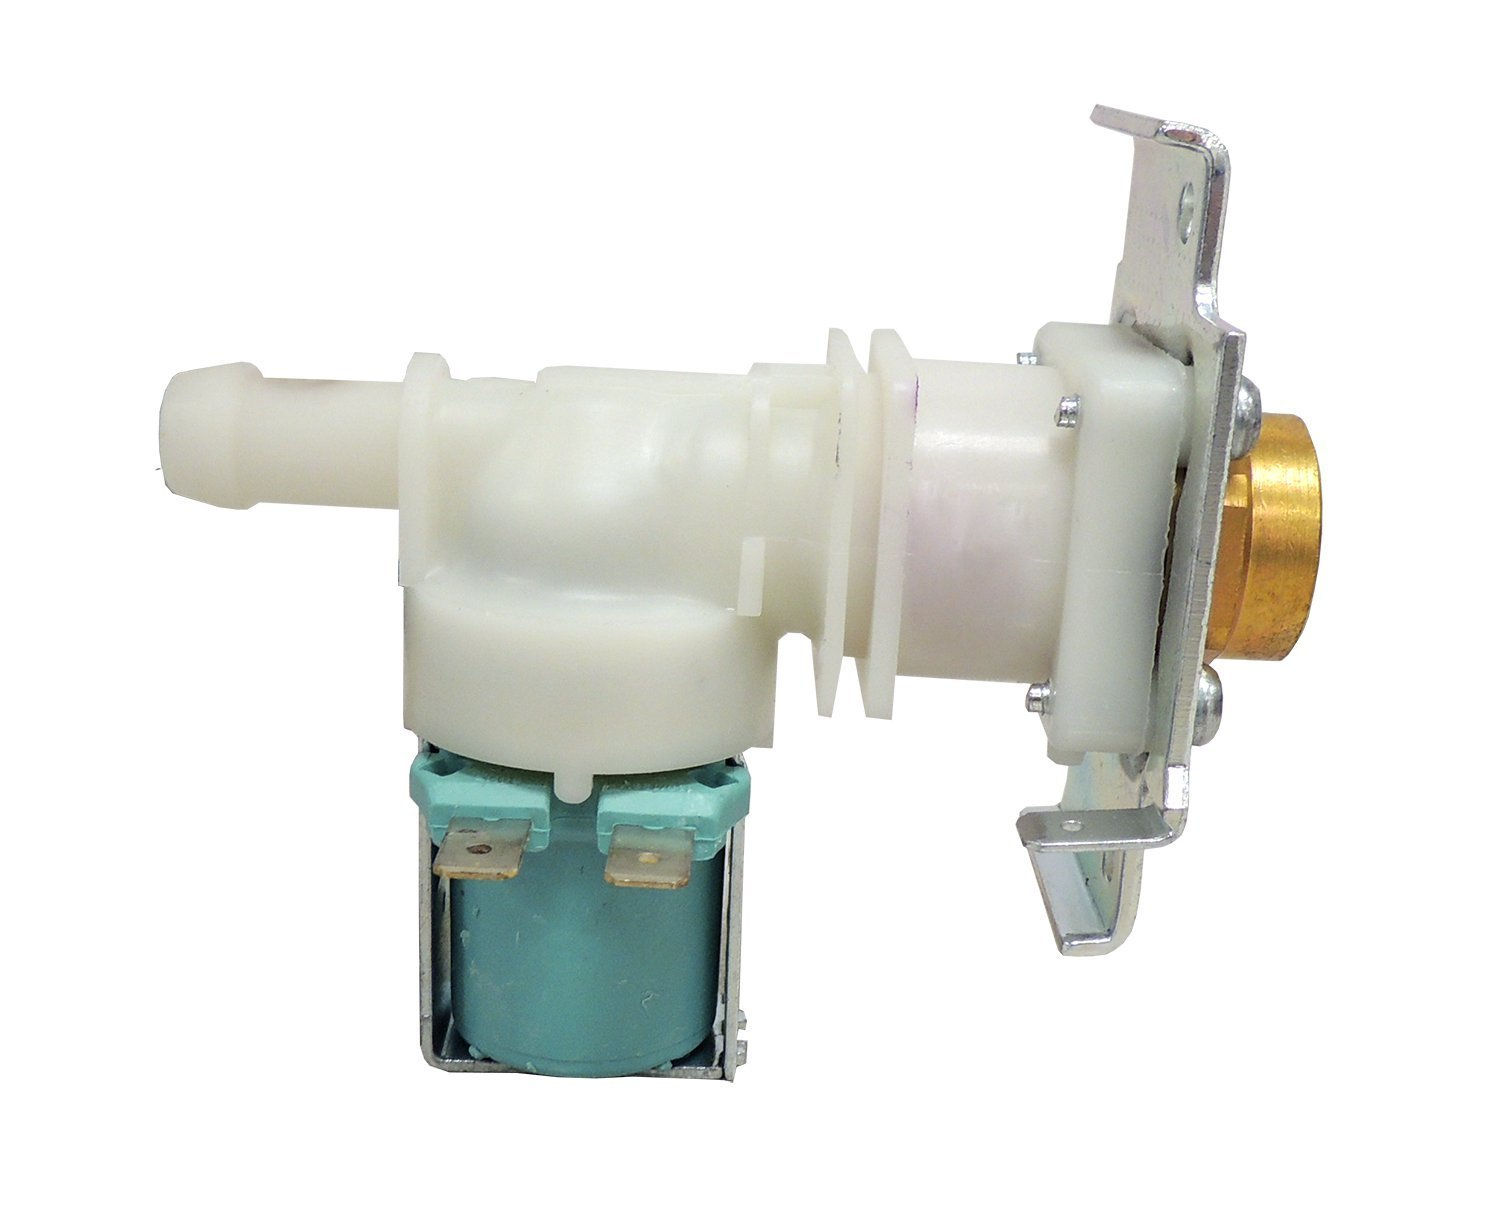 Supco WV5458 Dishwasher Water Valve, Replaces 00189533, 00580009, 00167081, LP11904, PS1266278